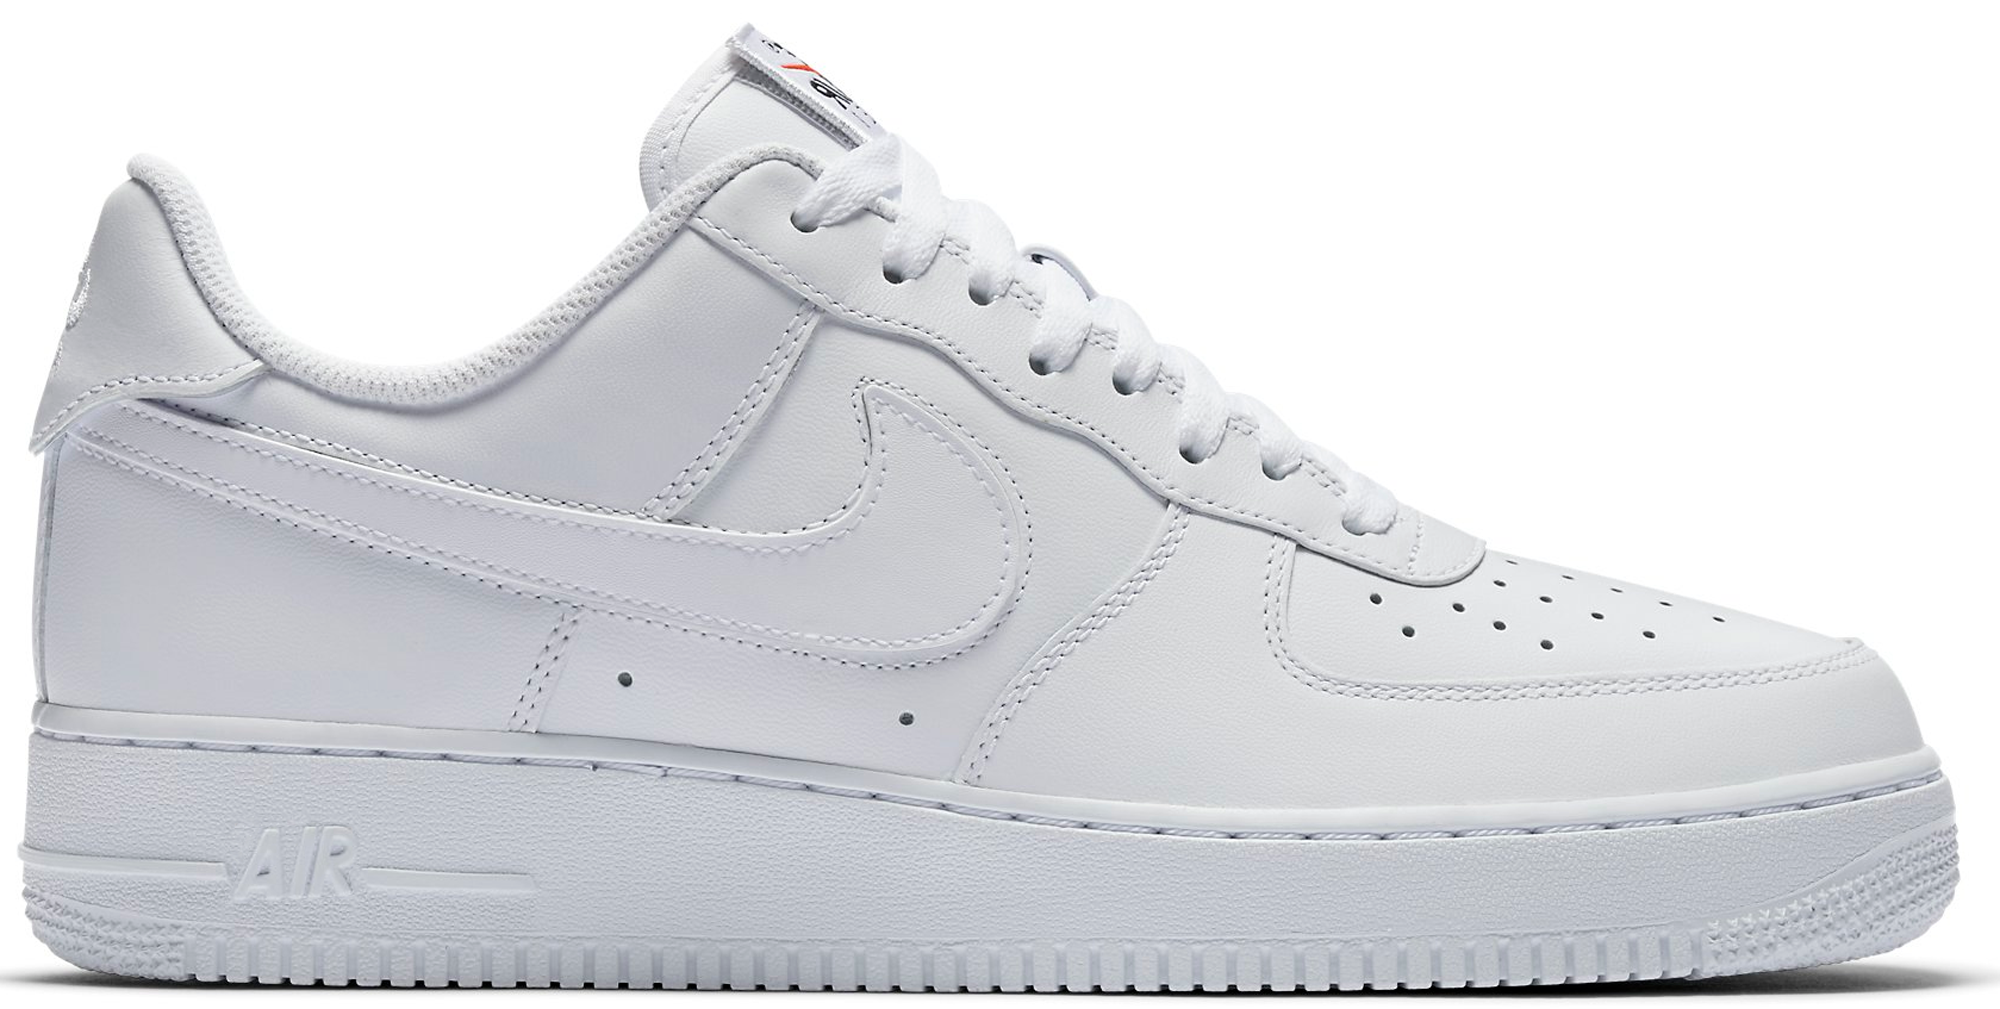 Nike Air Force 1 Paquet Bruissement Actions X